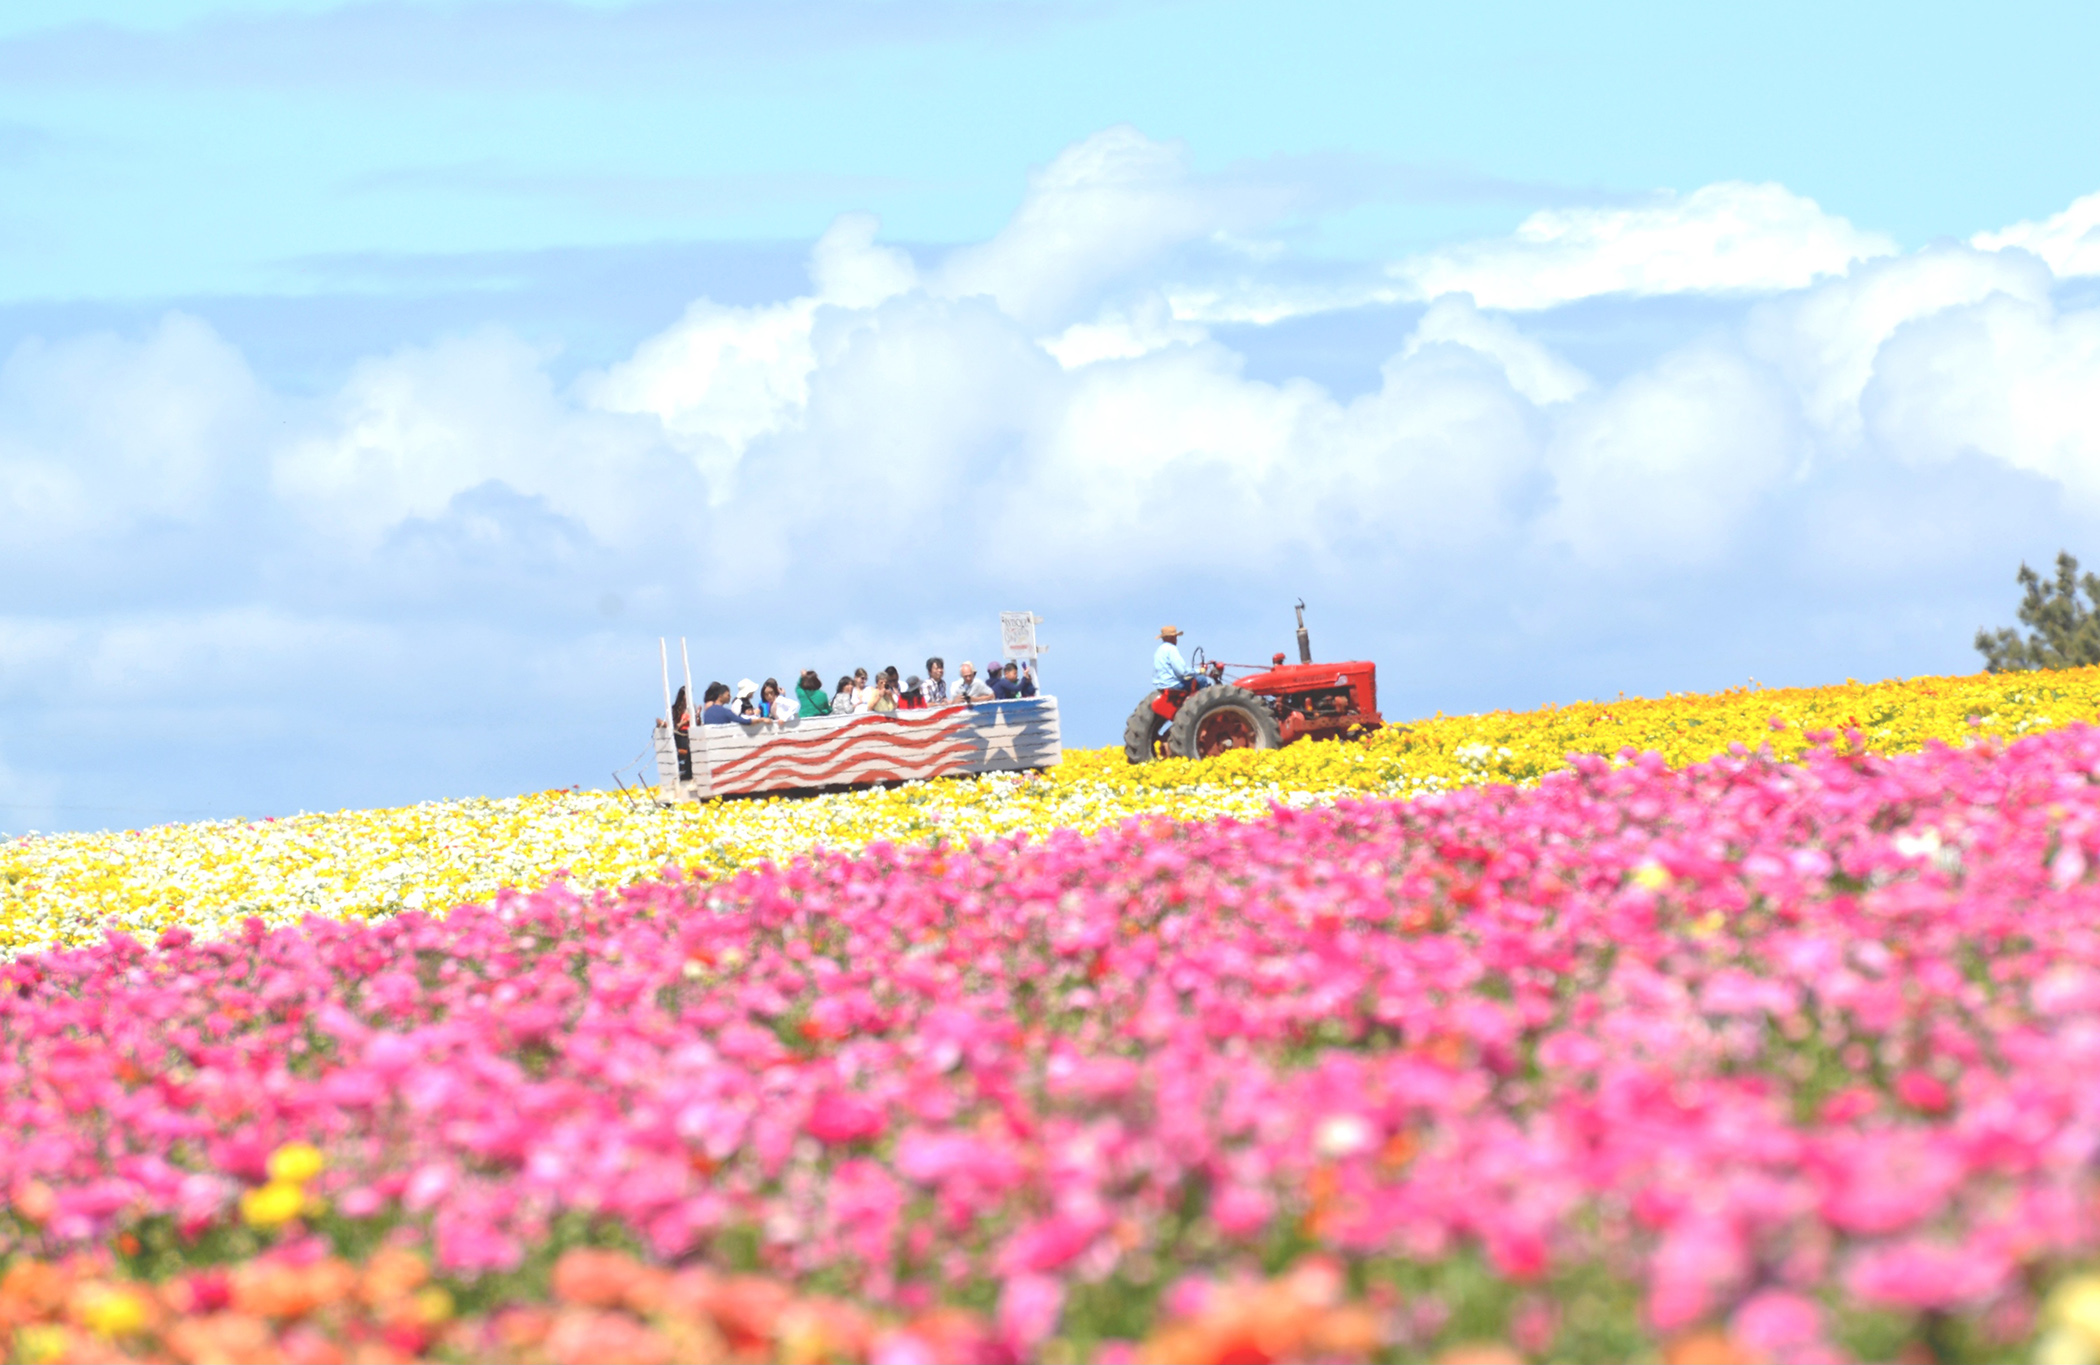 The nearly fifty acres of Giant Tecolote Ranunculus flowers that make up the Flower Fields at Carlsbad Ranch in Carlsbad, California, are in bloom for approximately six to eight weeks each year - from early March through early May- literally bringing the famous fields back to life.